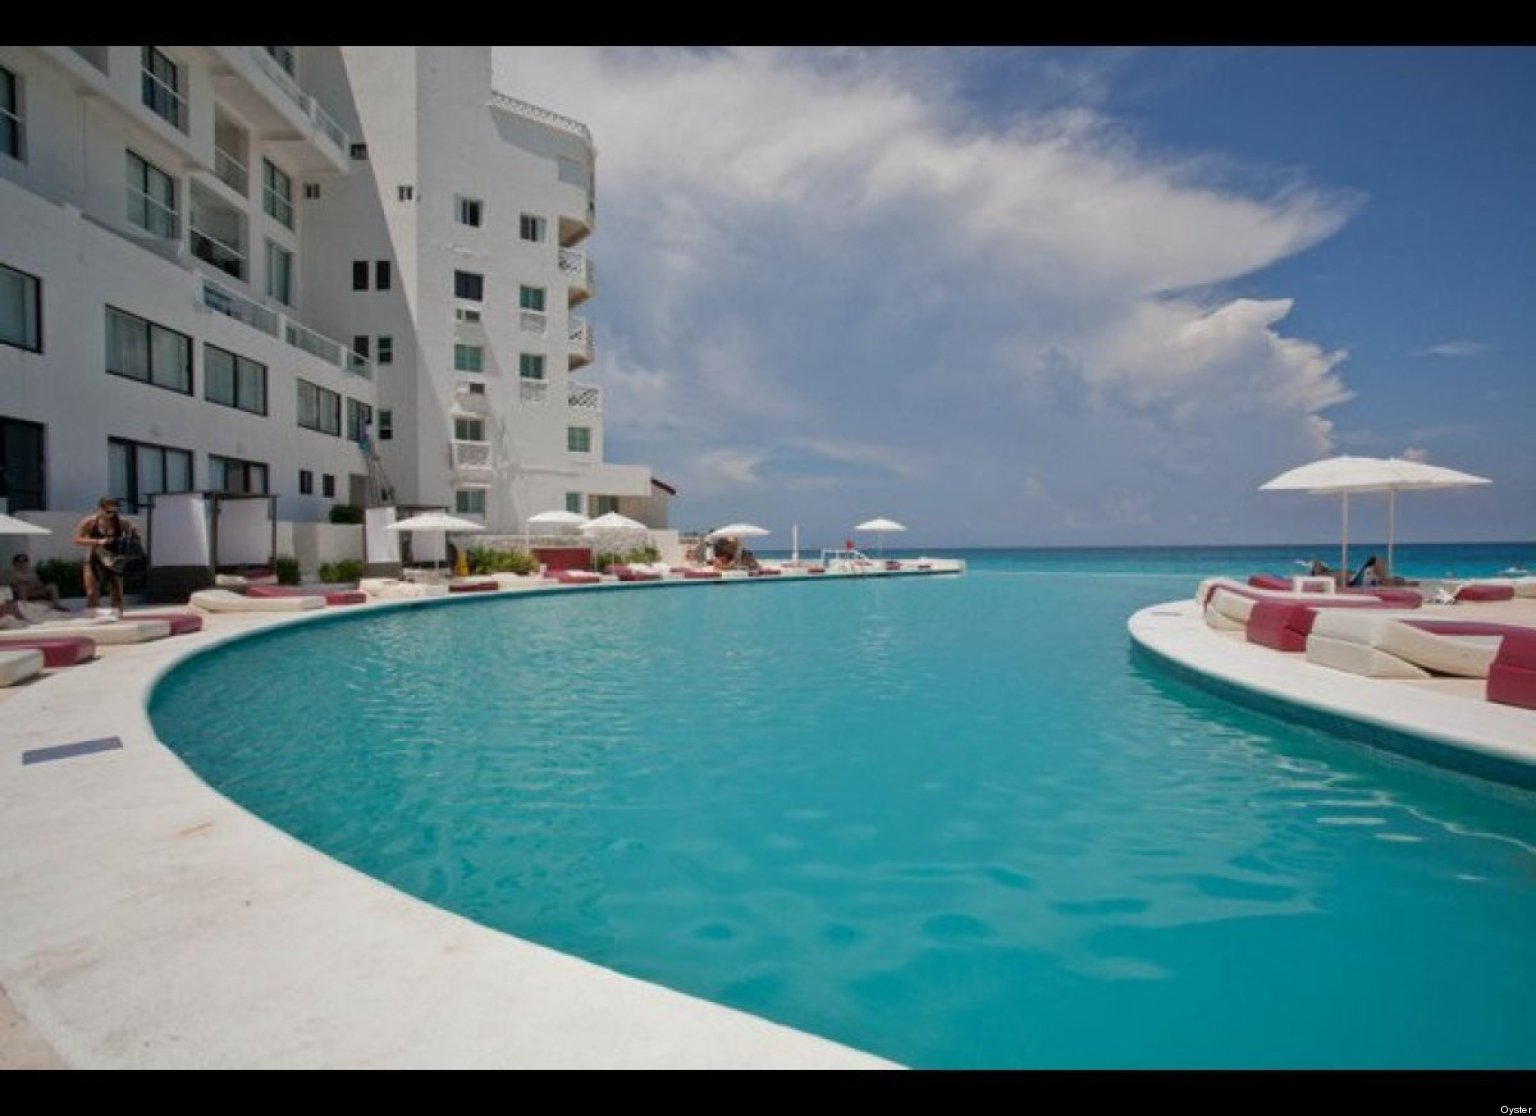 Large Infinity Pool In Your House : Exciting Curved Large Infinity Pool Contemporary Hotel Public Pool